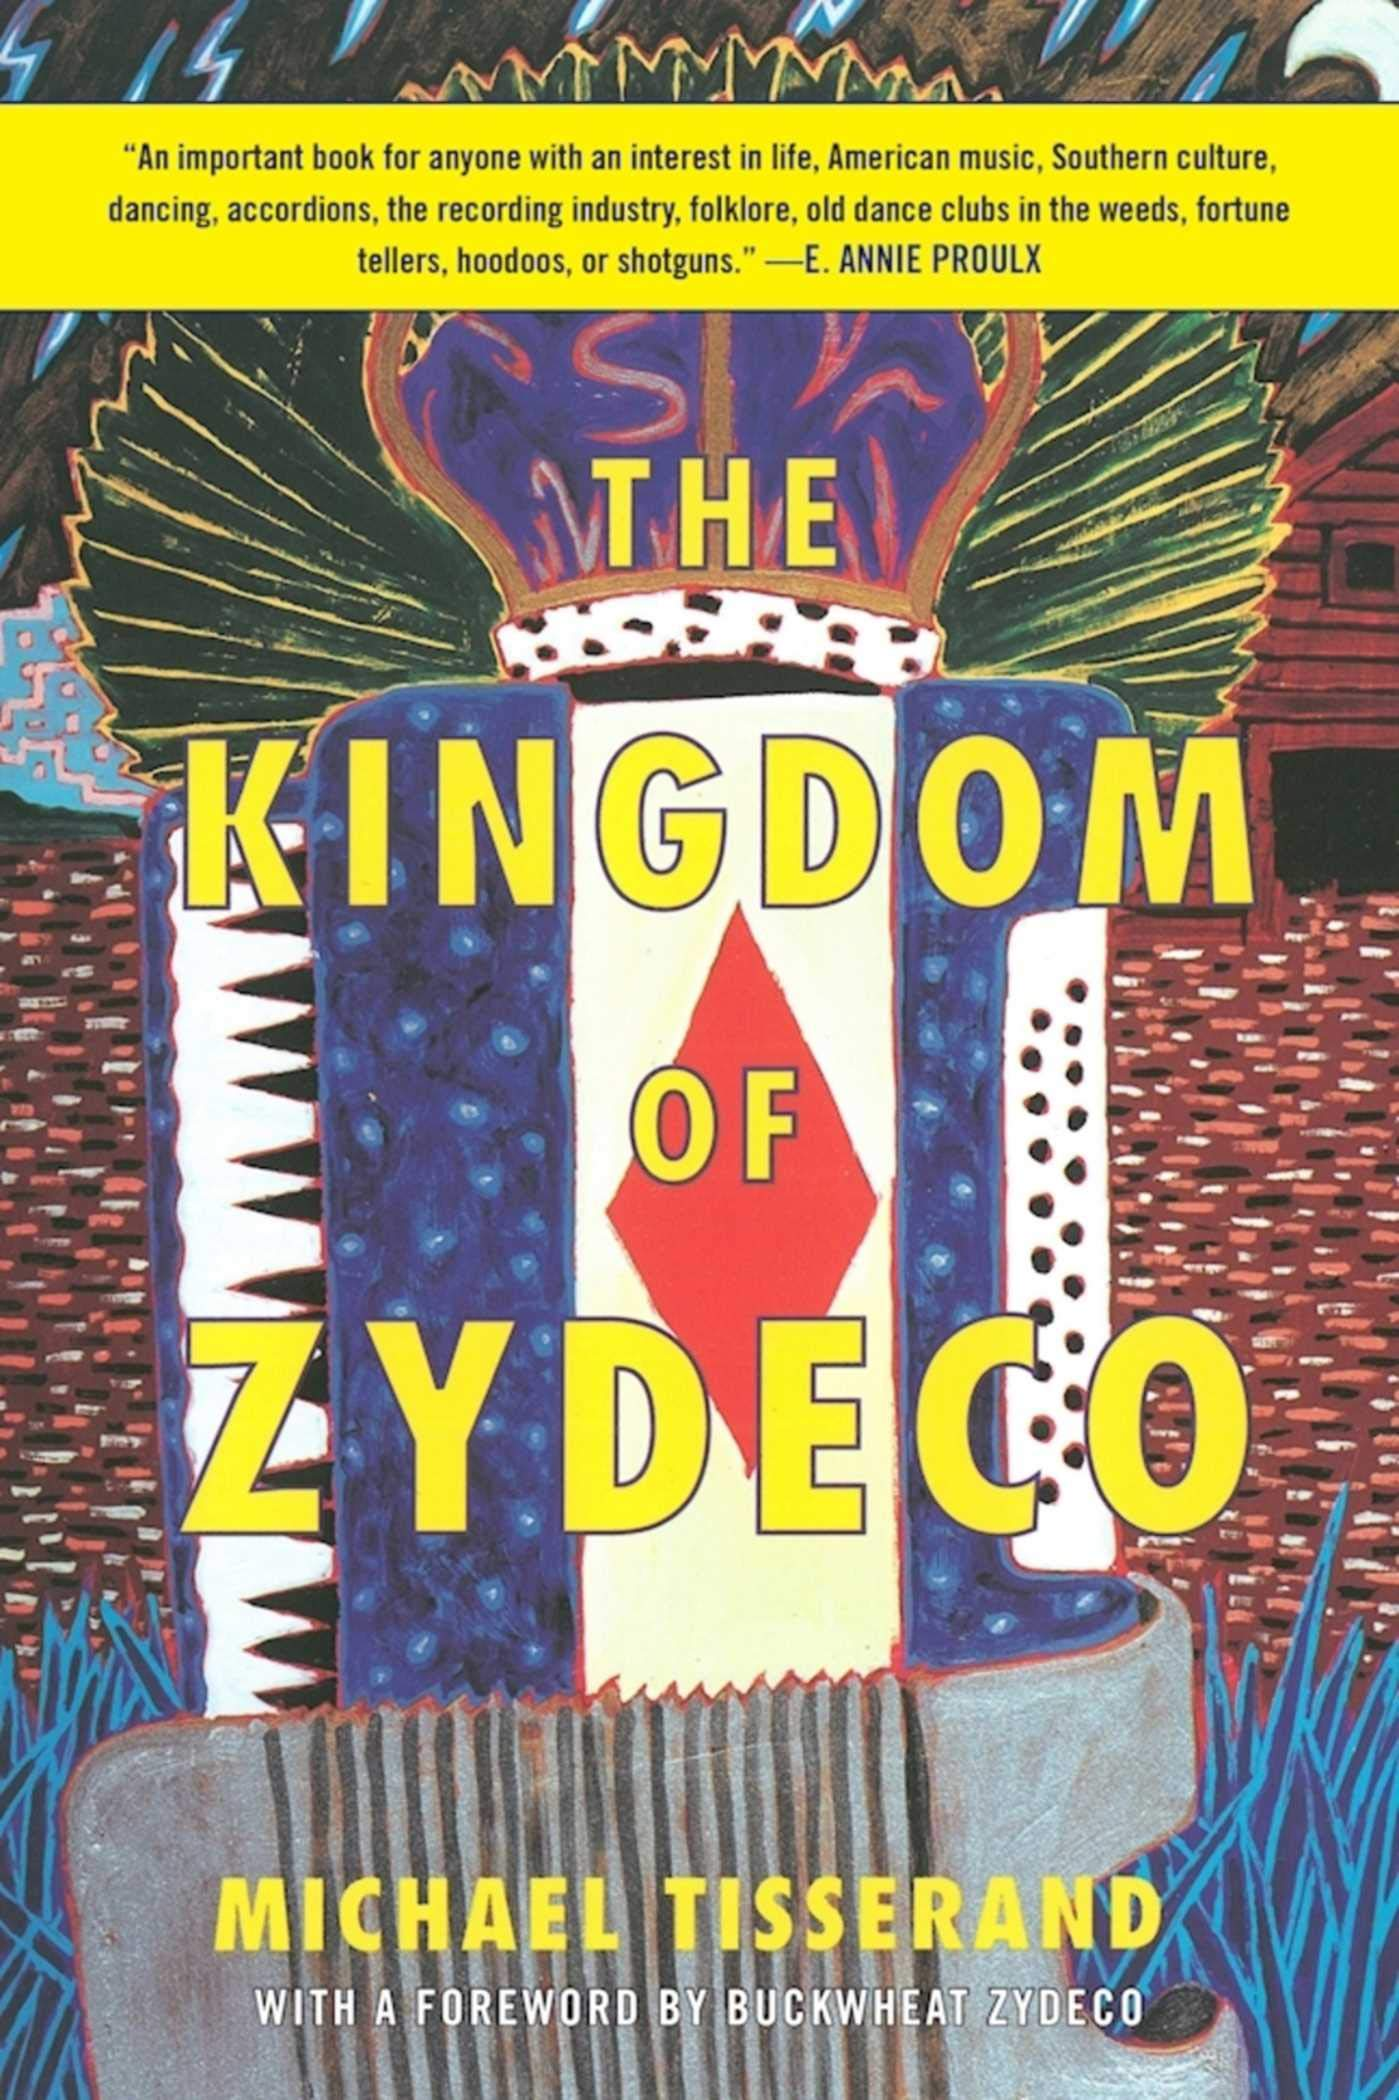 812QnHAnKmL Bayou Culture: Books to Explore Zydeco Music